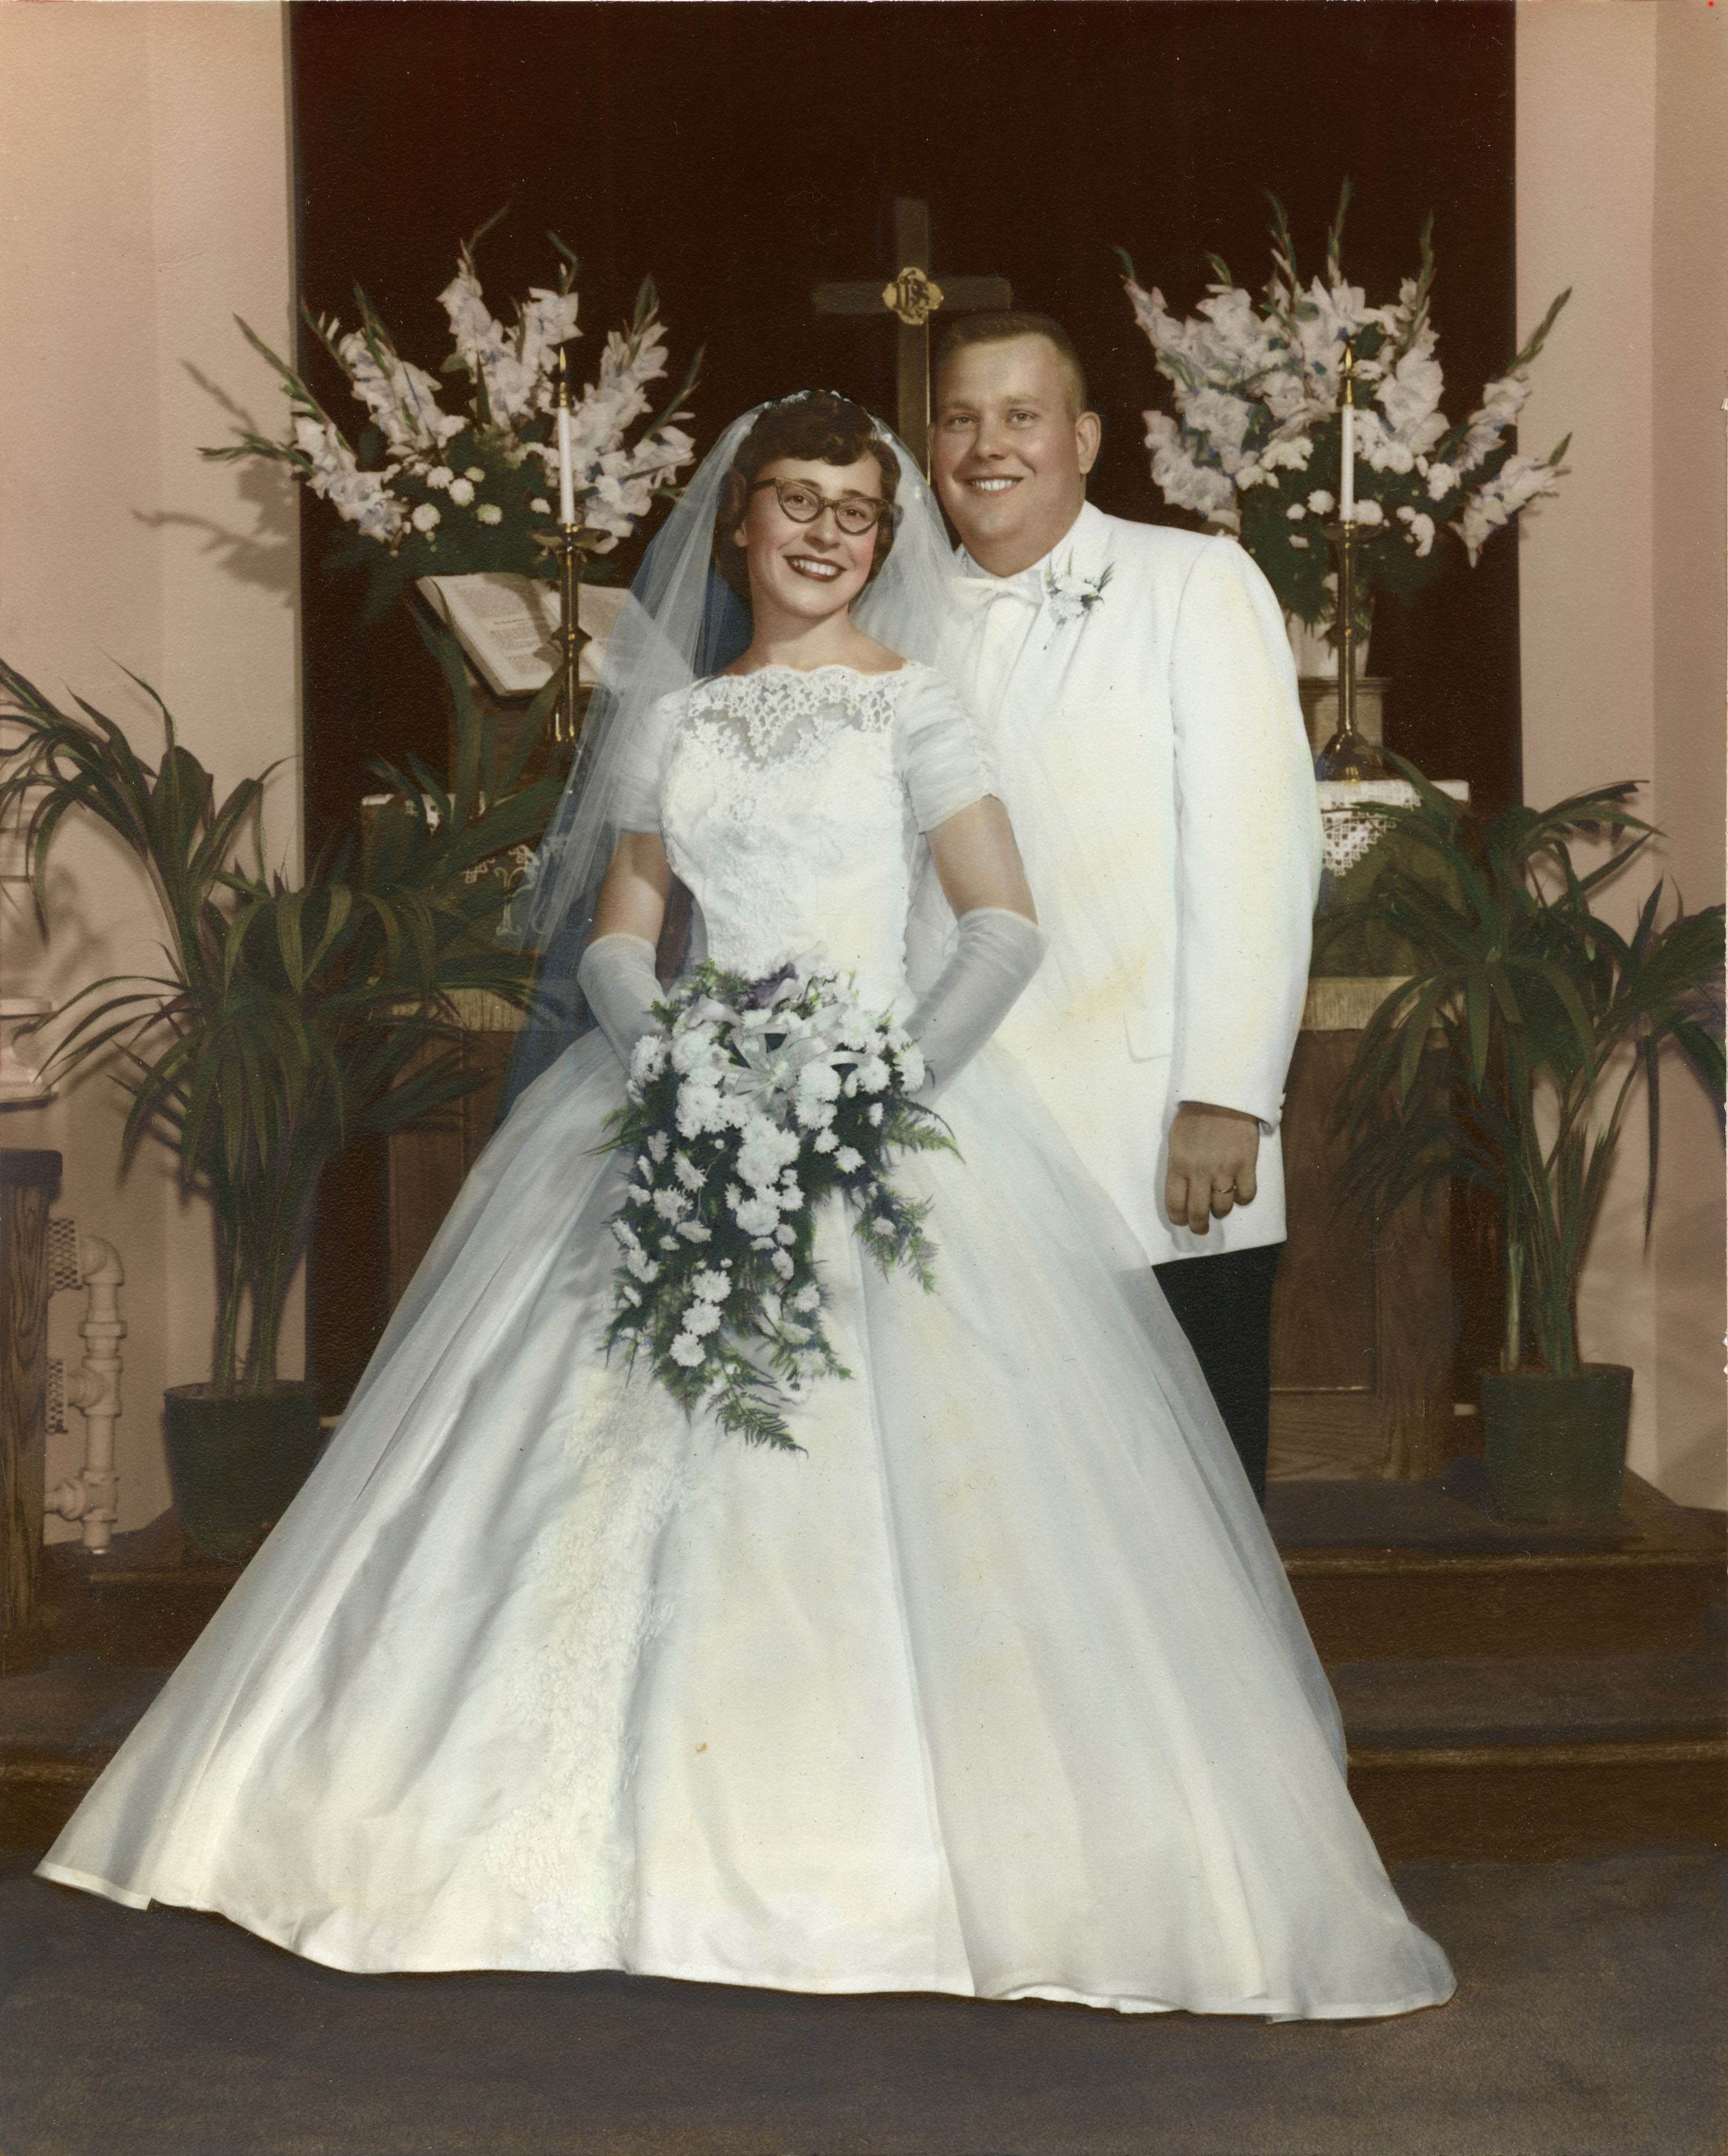 Vintage 1960s Wedding Dresses: 1960. They Are Adorable! In 2019